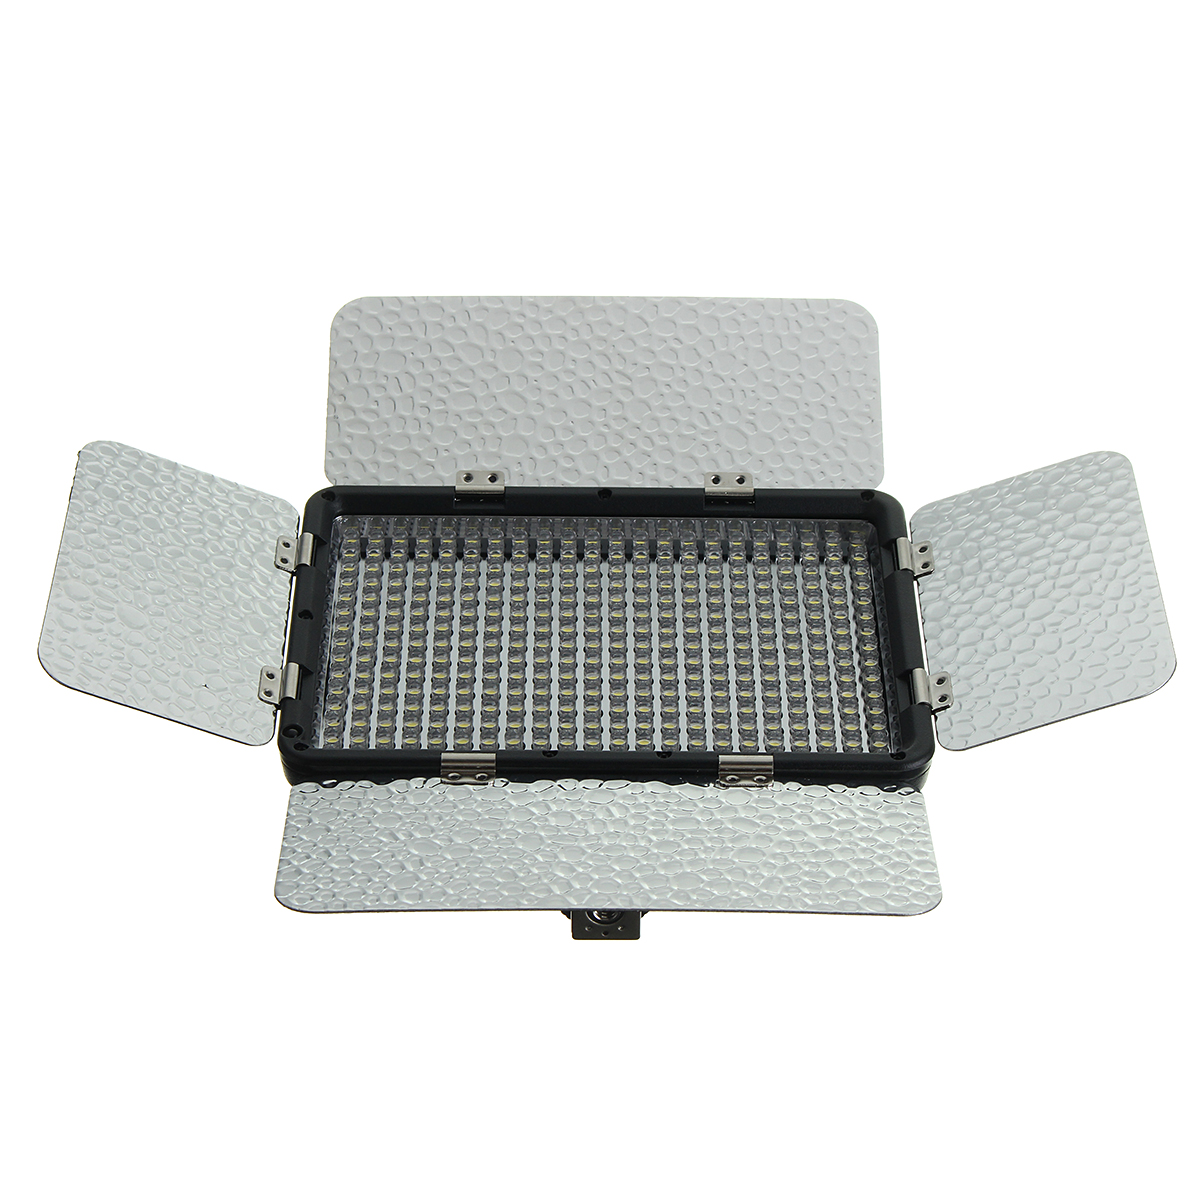 330 LED Light Panel Kit Photography Video Studio L ighting Dimmer Mount Photo